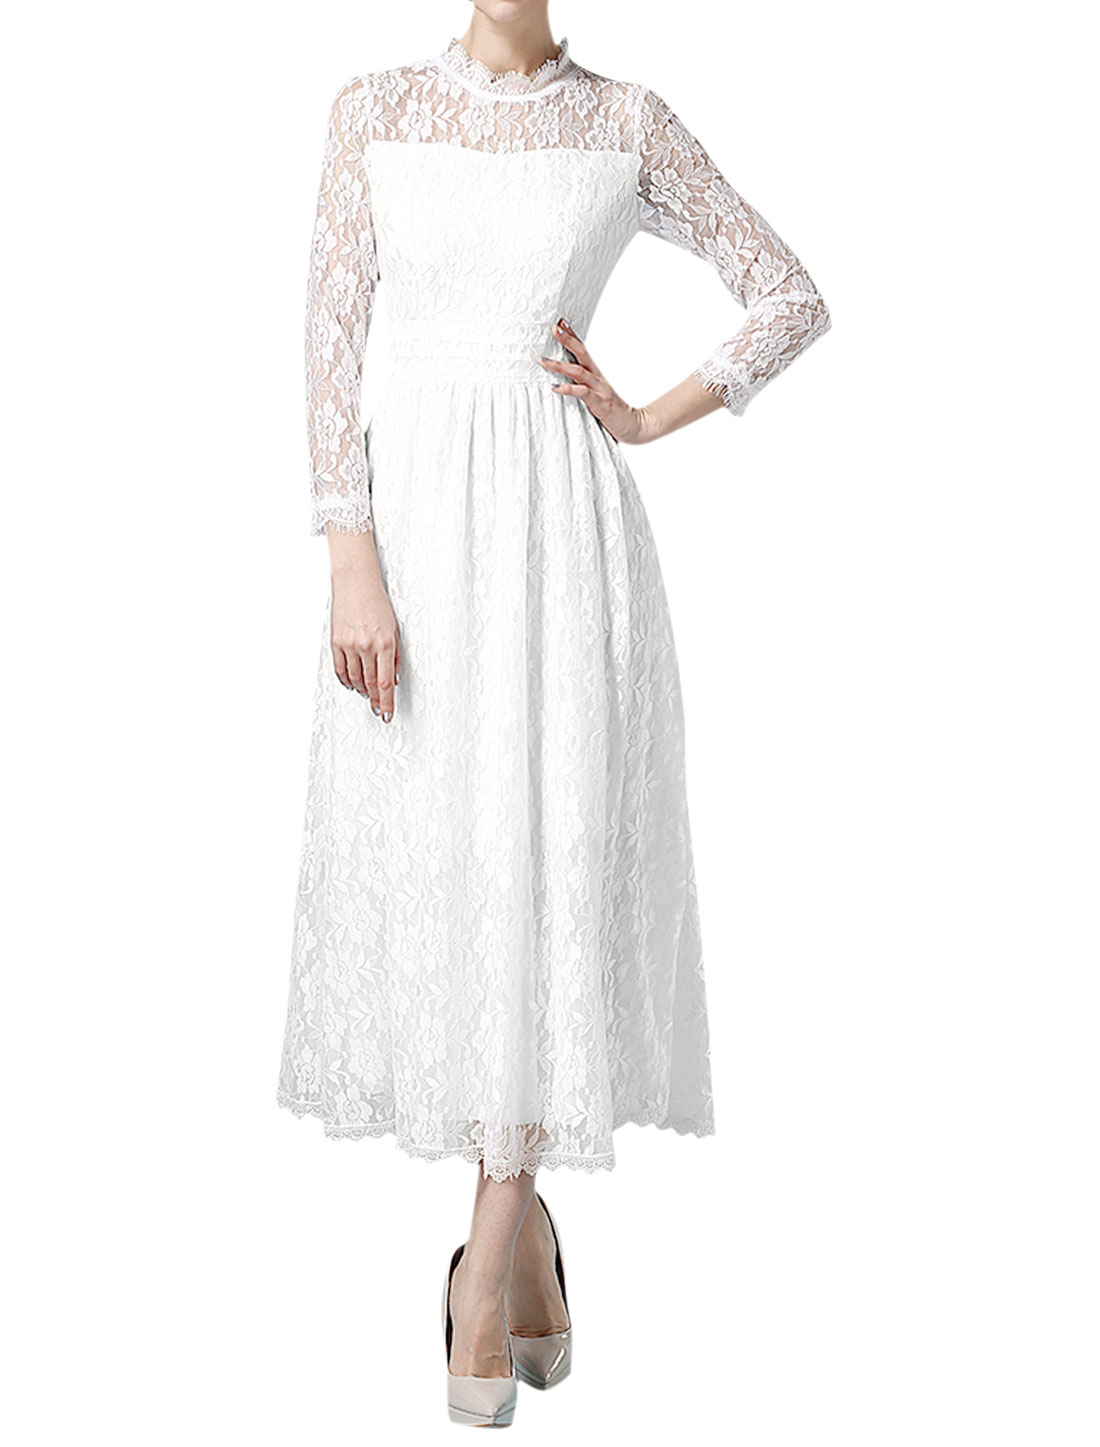 Women Scalloped Neck Bracelet Sleeves Floral Design Lace Dress White M